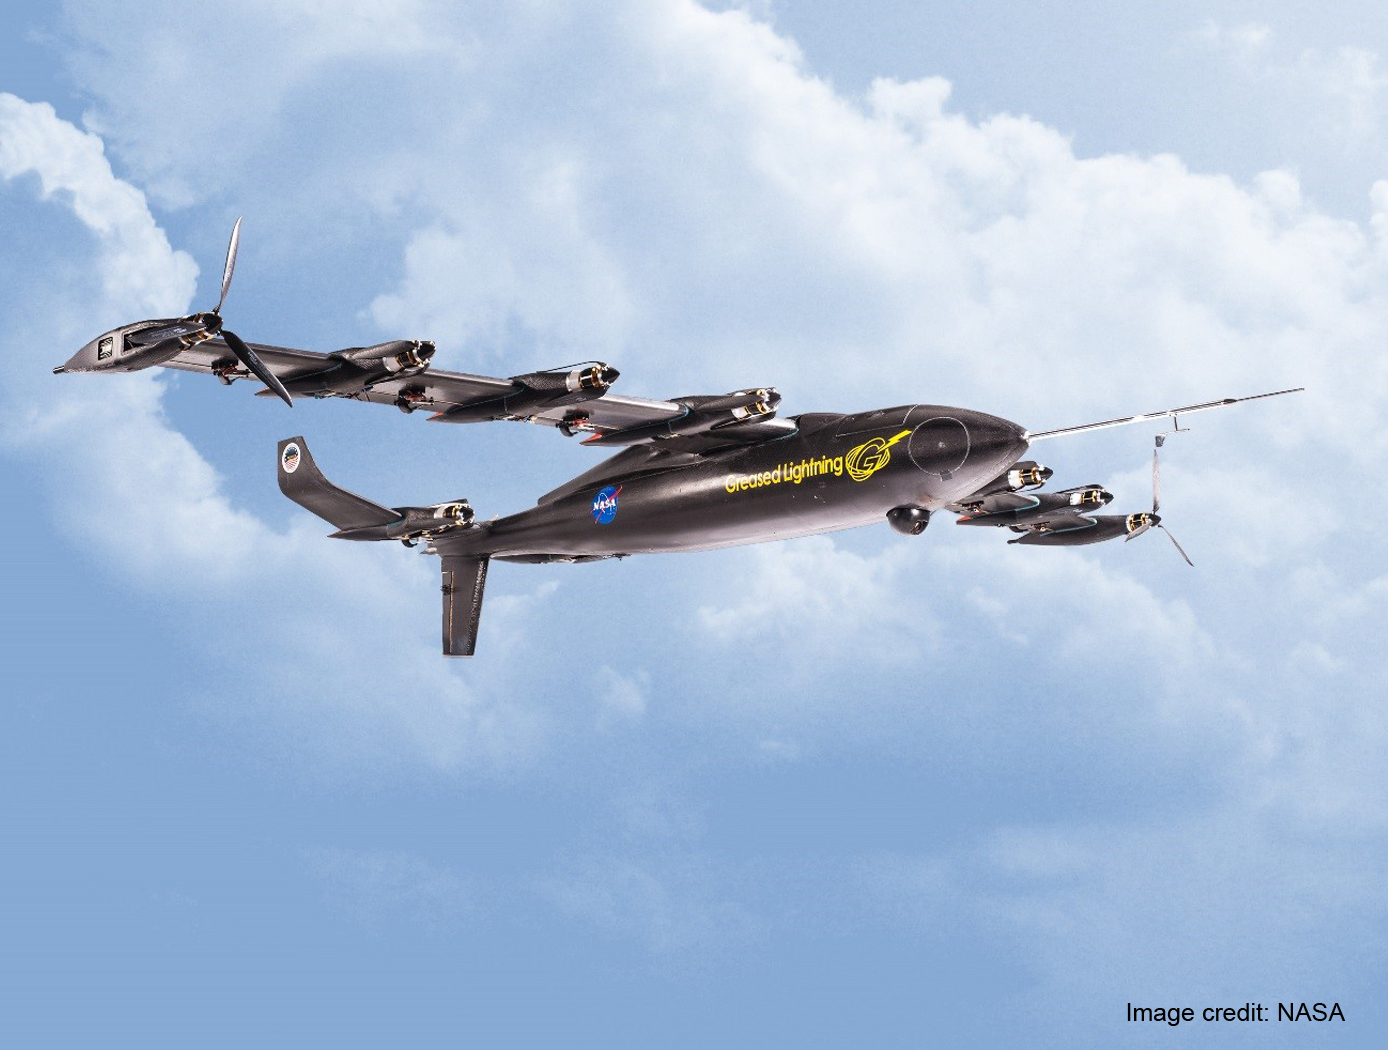 VTOL UAV With the Cruise Efficiency of a Conventional Fixed